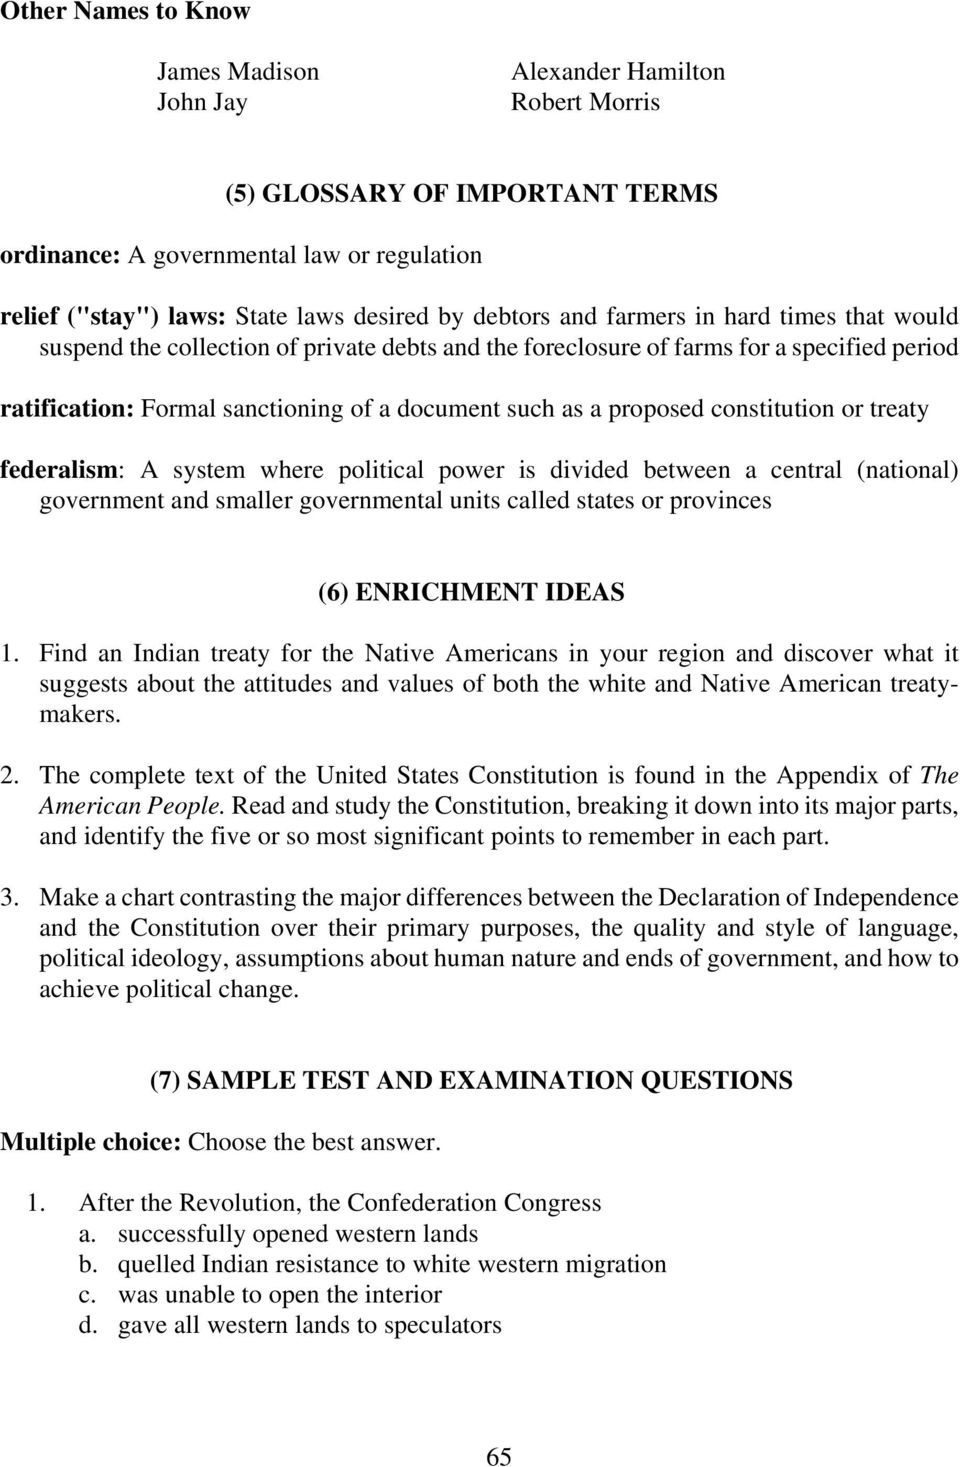 proposed constitution or treaty federalism: A system where political power is divided between a central (national) government and smaller governmental units called states or provinces (6) ENRICHMENT